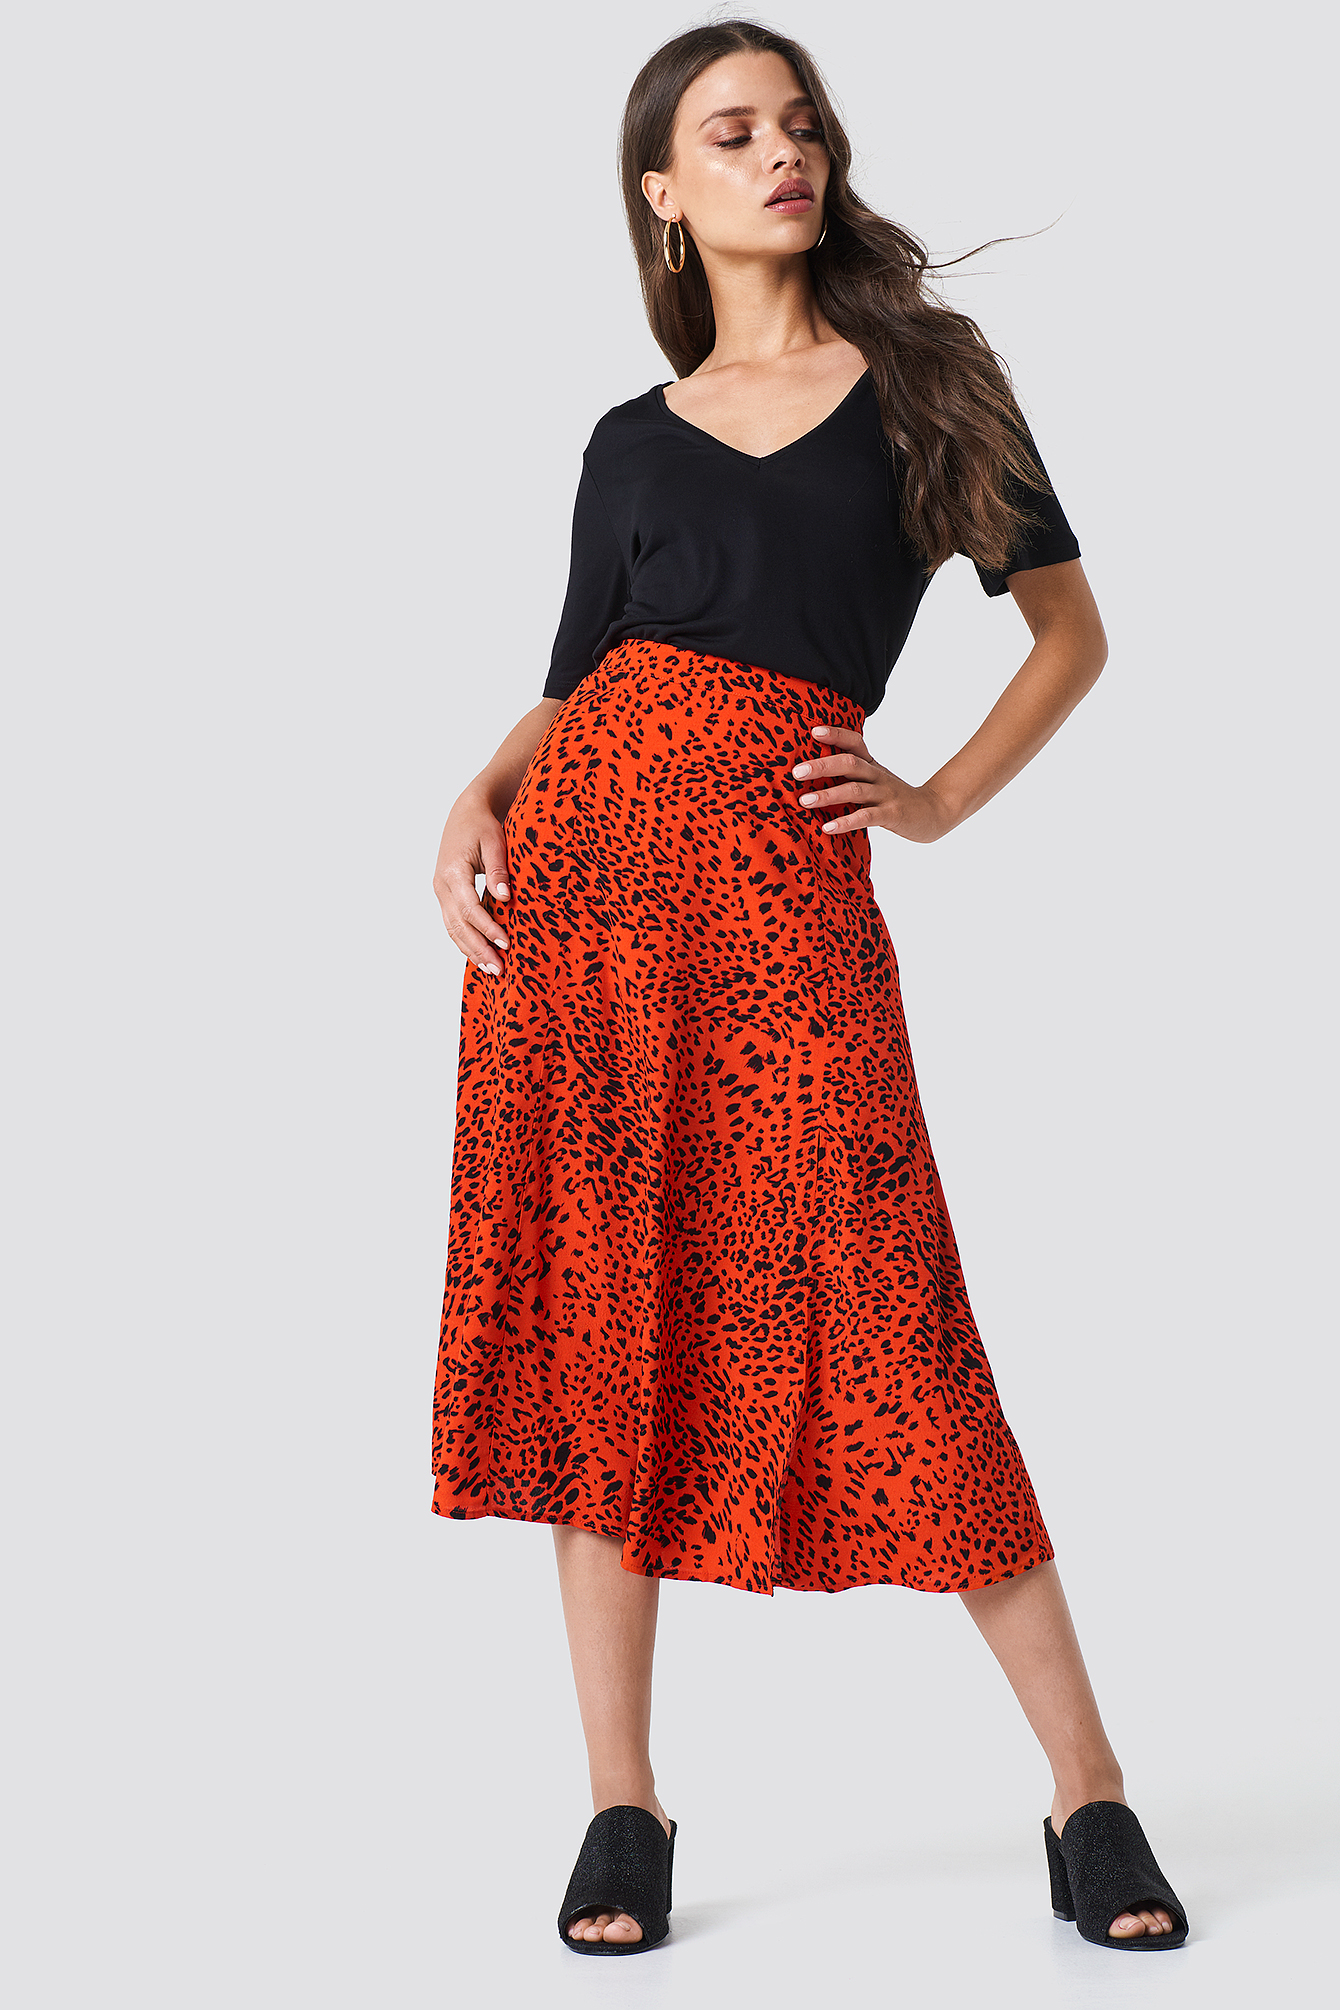 gestuz -  Loui Skirt - Red,Multicolor